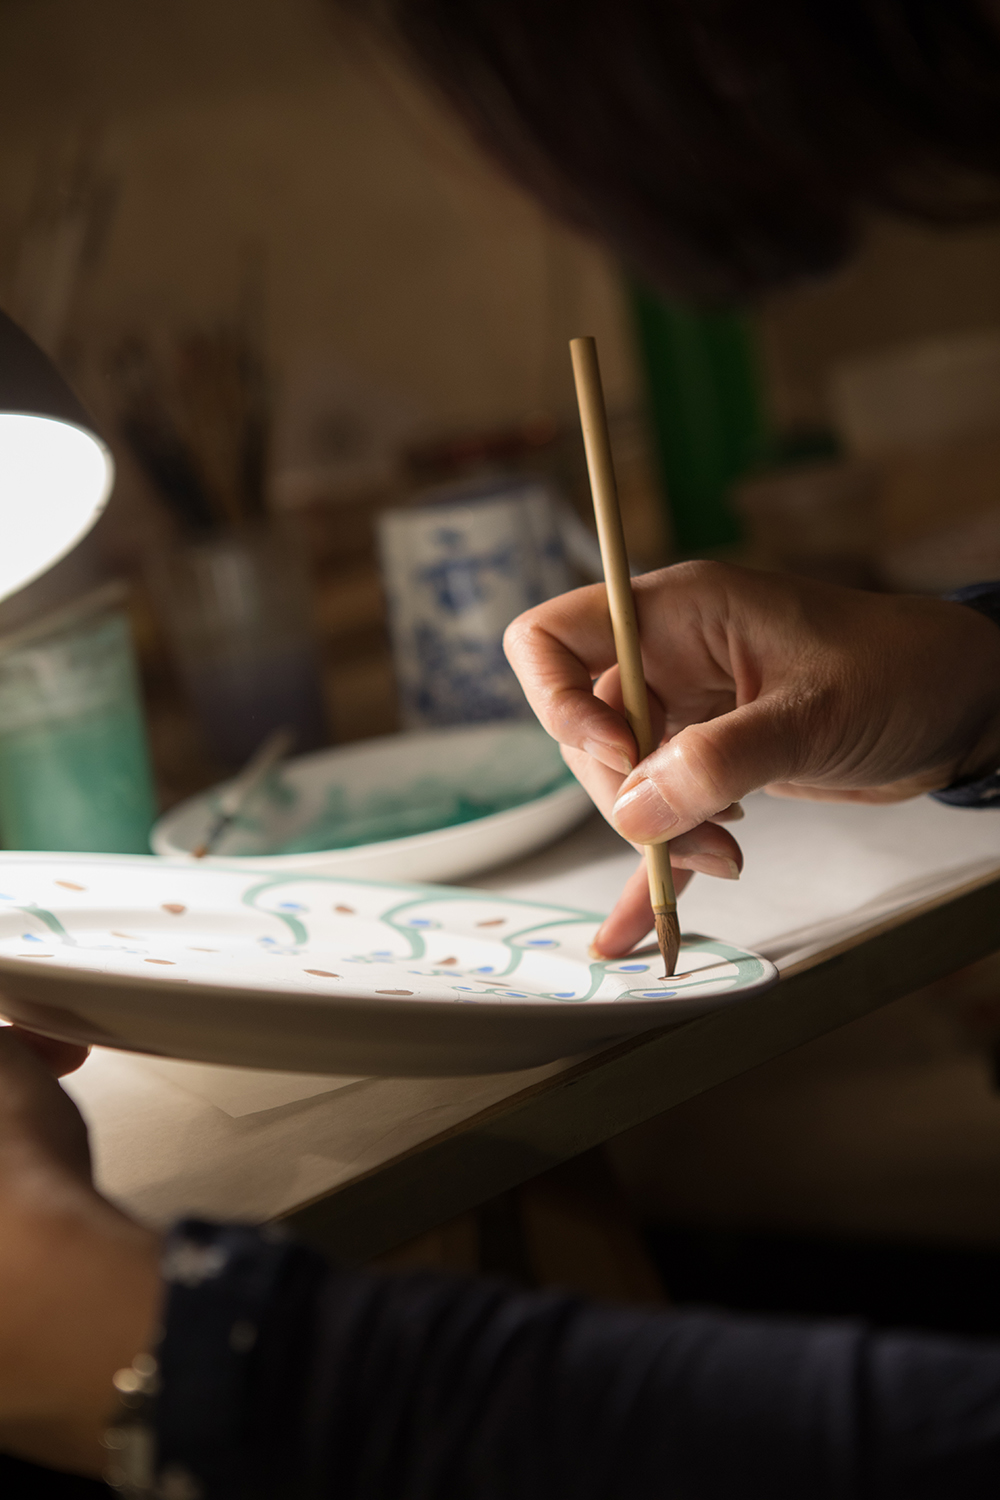 Paravincini ceramics professional profile portrait photography documentary Italy by Aimee Almstead 3.jpg